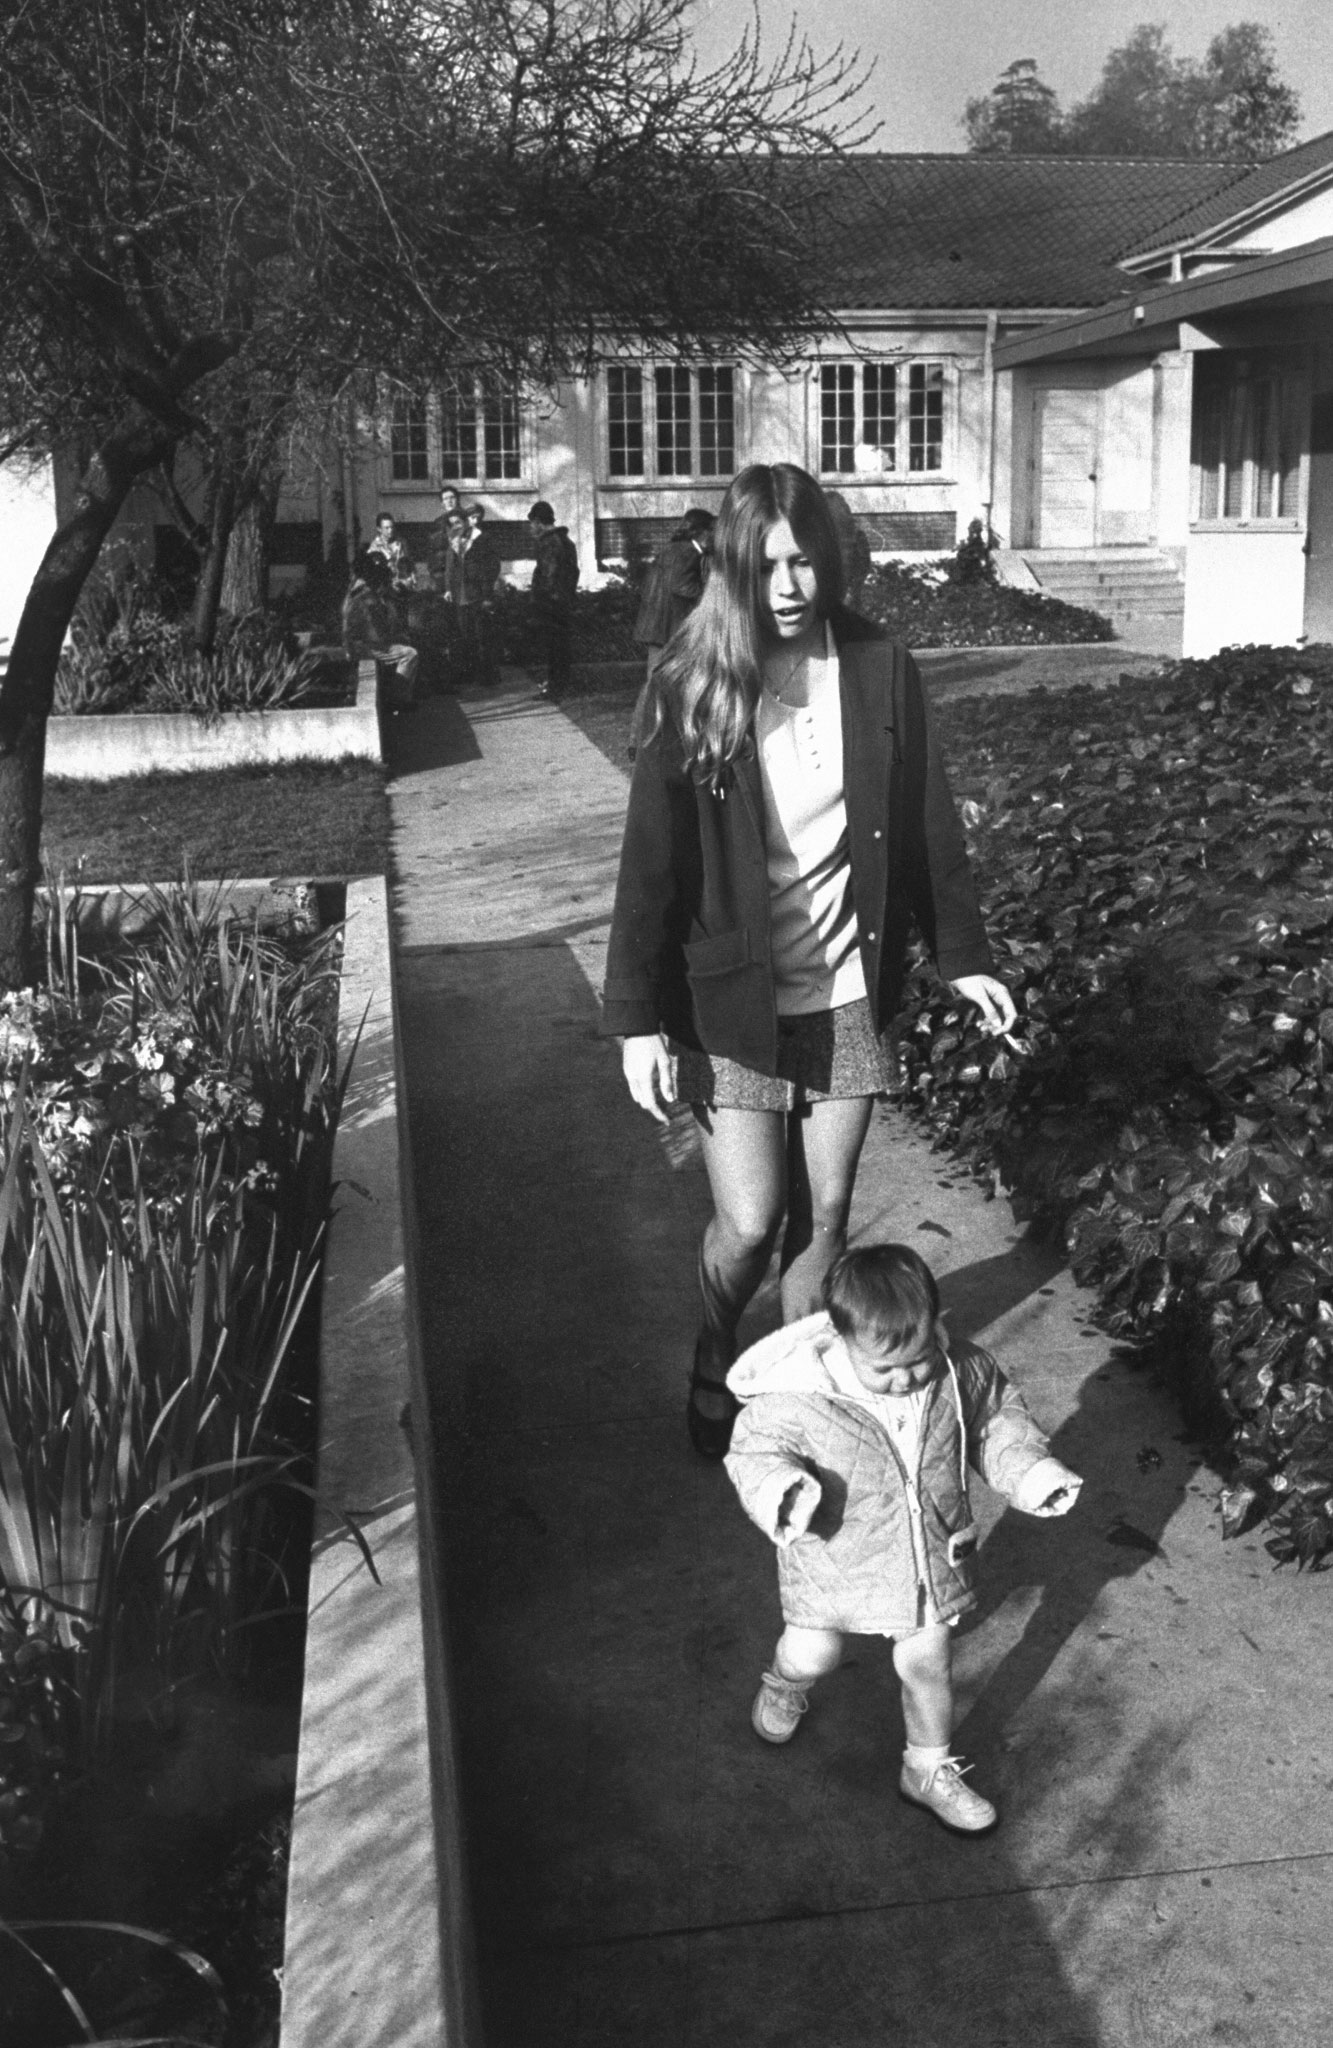 <b>Caption from LIFE.</b> In the courtyard outside the school, Vicki Conger, 17, takes a stroll with her 13-month-old daughter, Shawn Michelle.